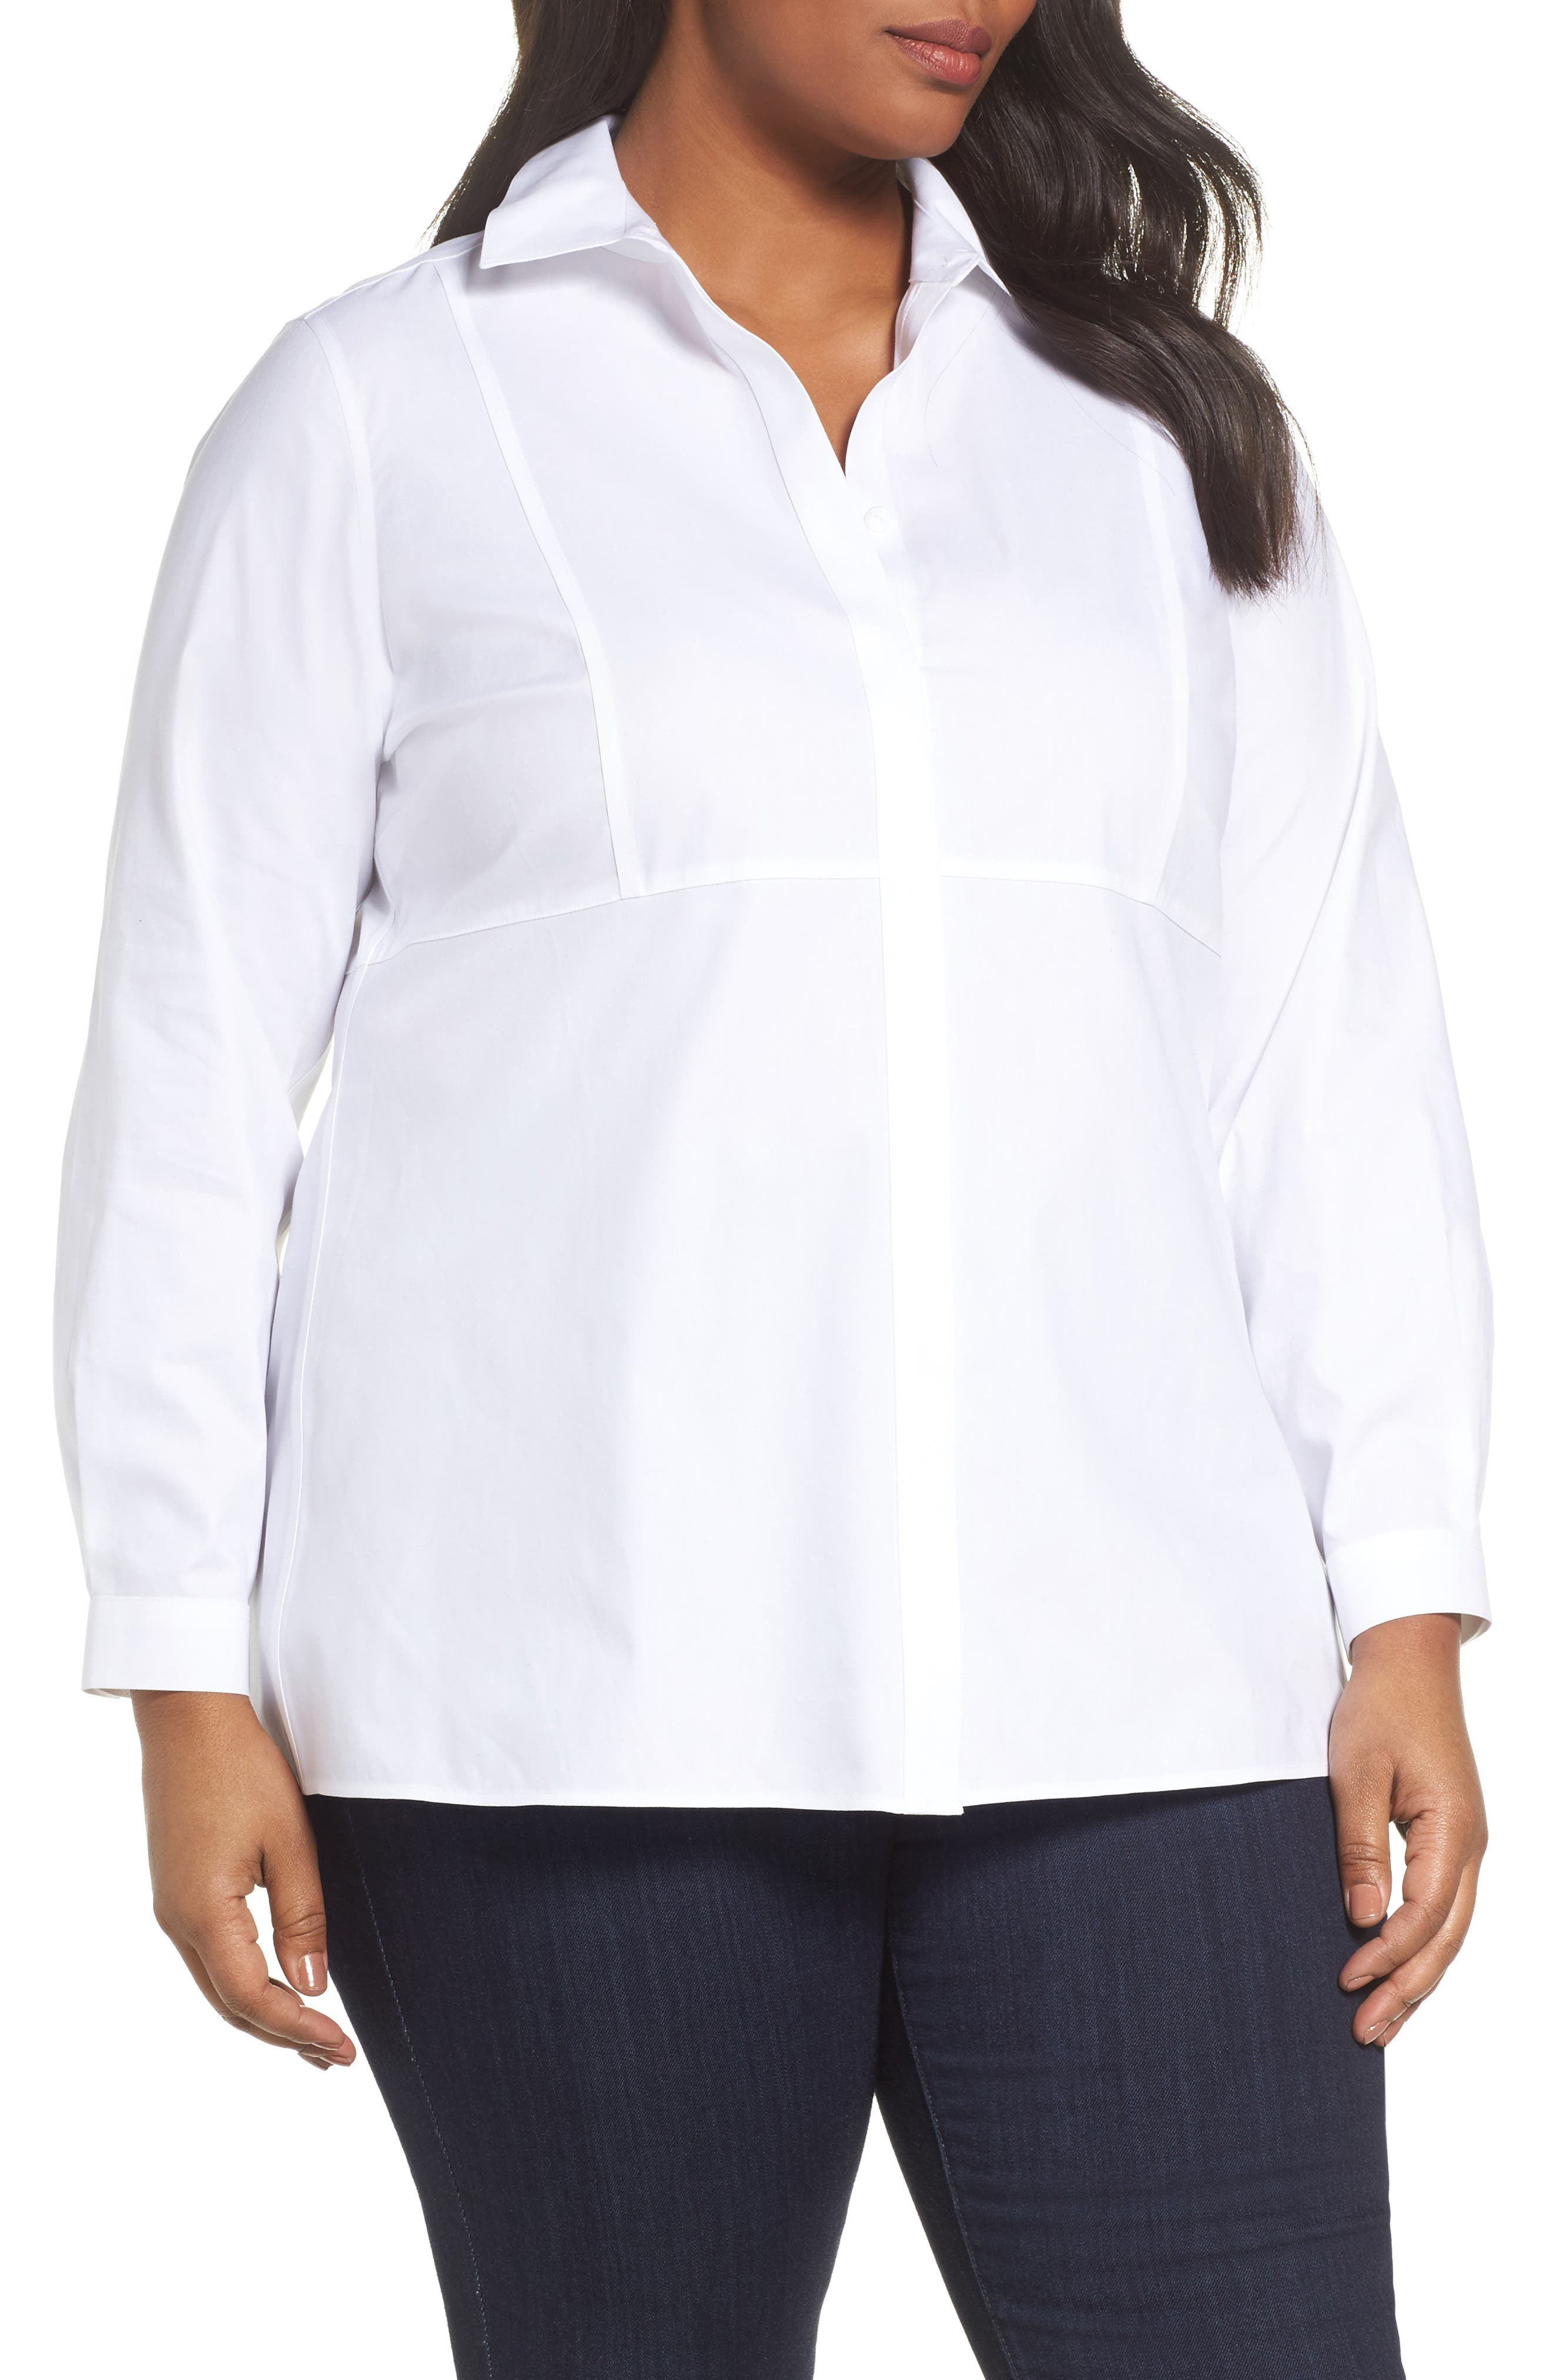 Pinpoint Oxford Cloth Shirt,                         Main,                         color, White